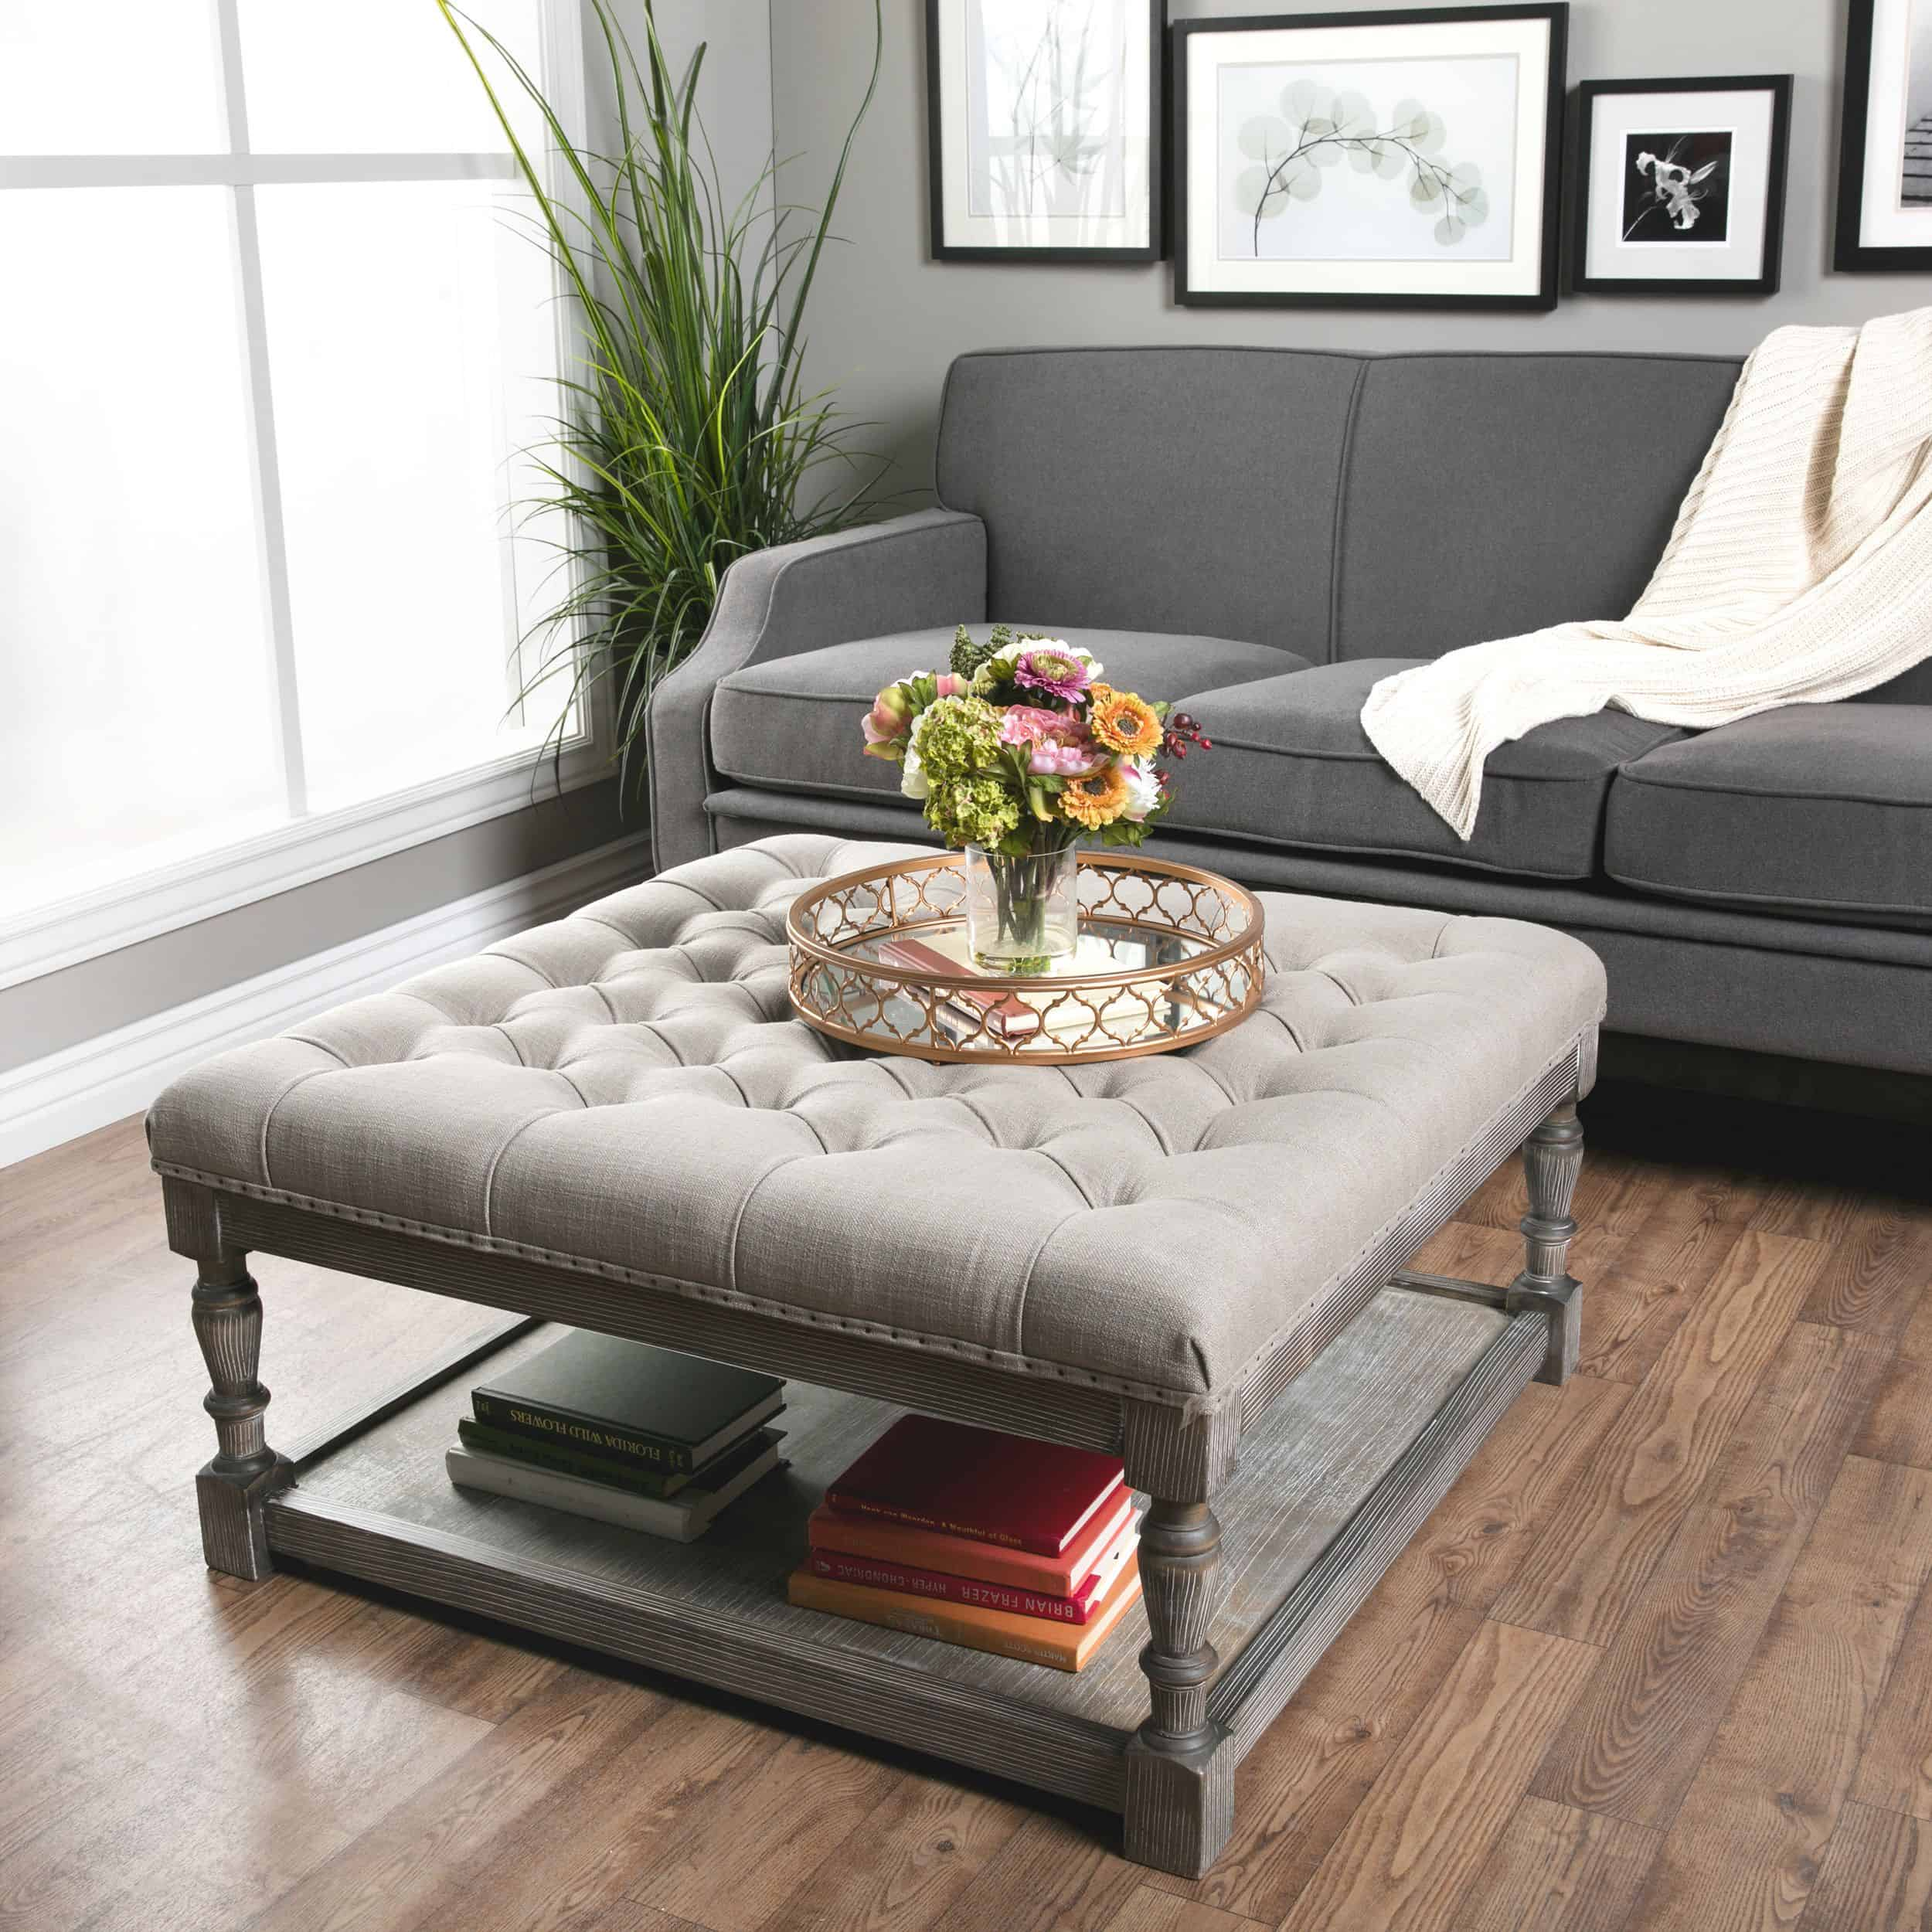 12 Best Ways To Decorate A Coffee Table